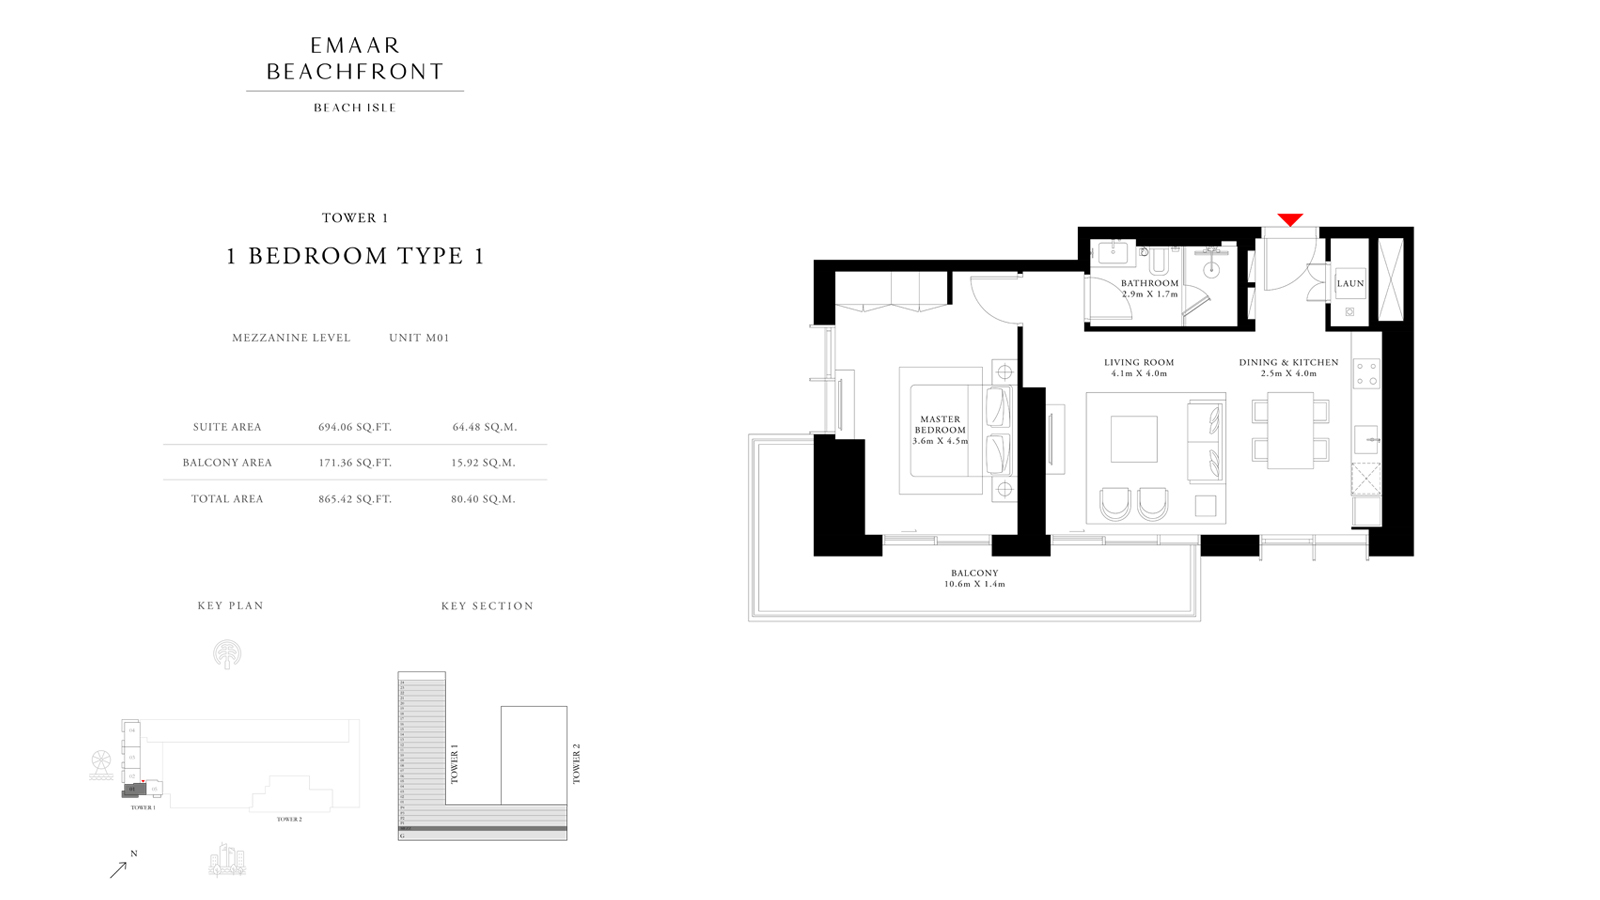 1 Bedroom Type 1 Tower 1, Size 865    sq. ft.